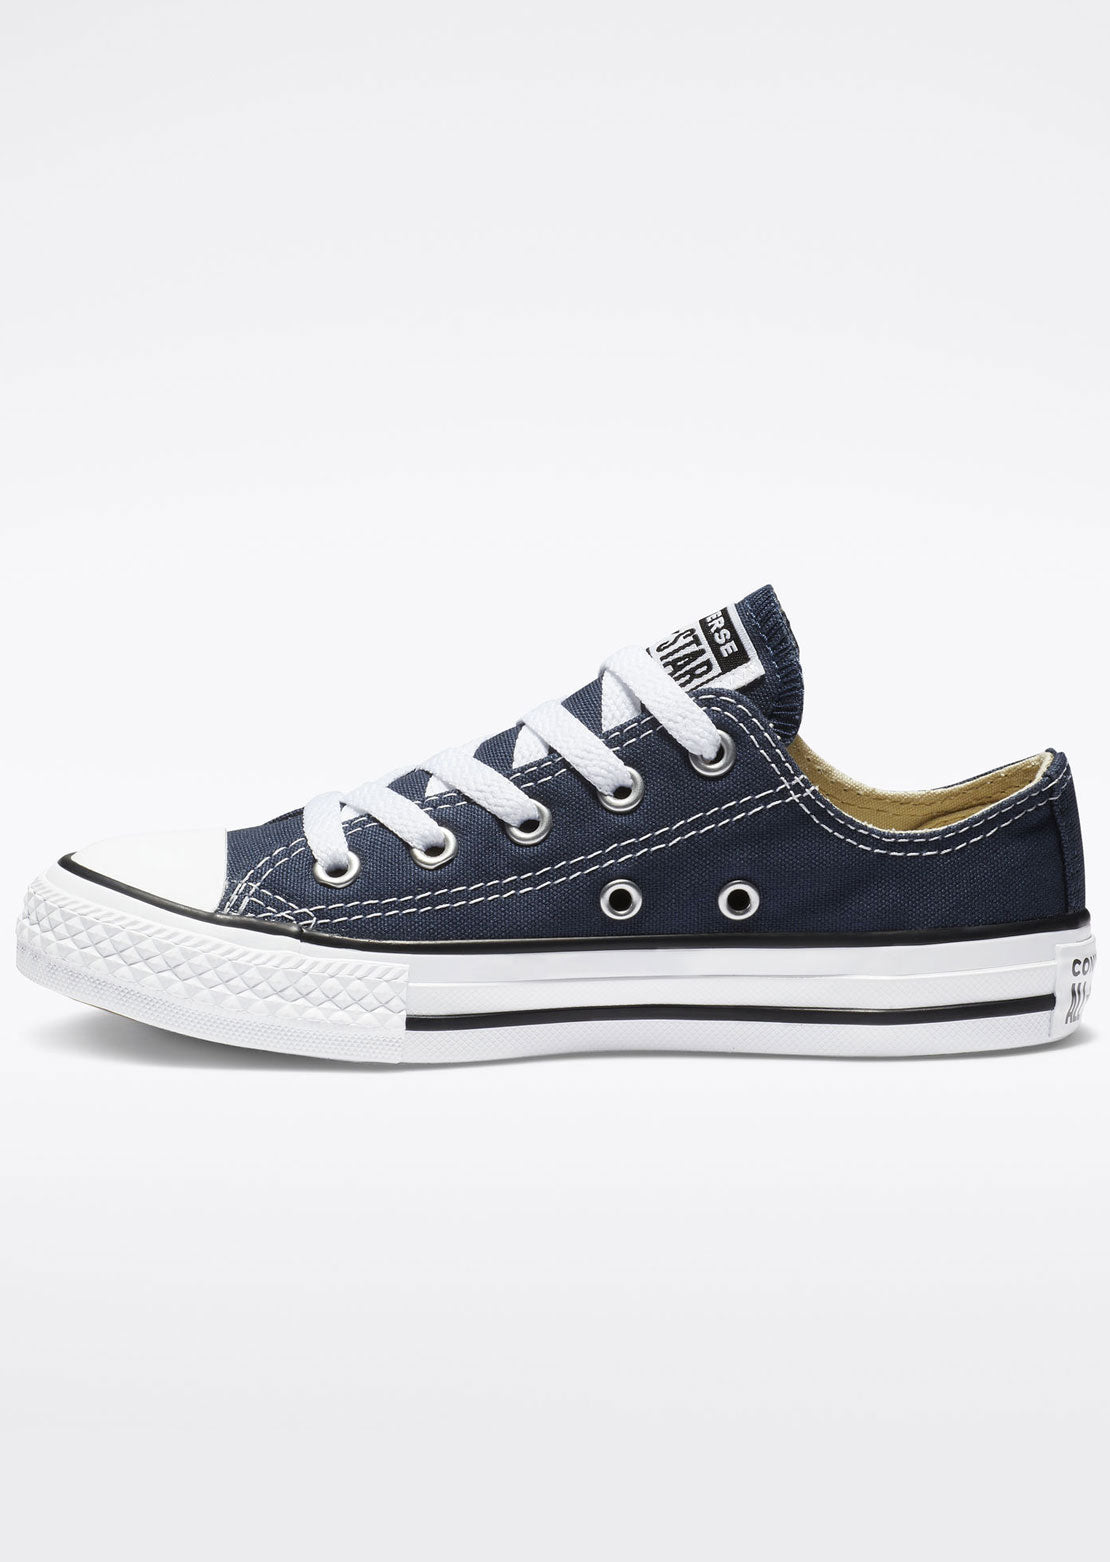 Converse Junior Chuck Taylor Low Top Shoes 3J237C OX/Navy